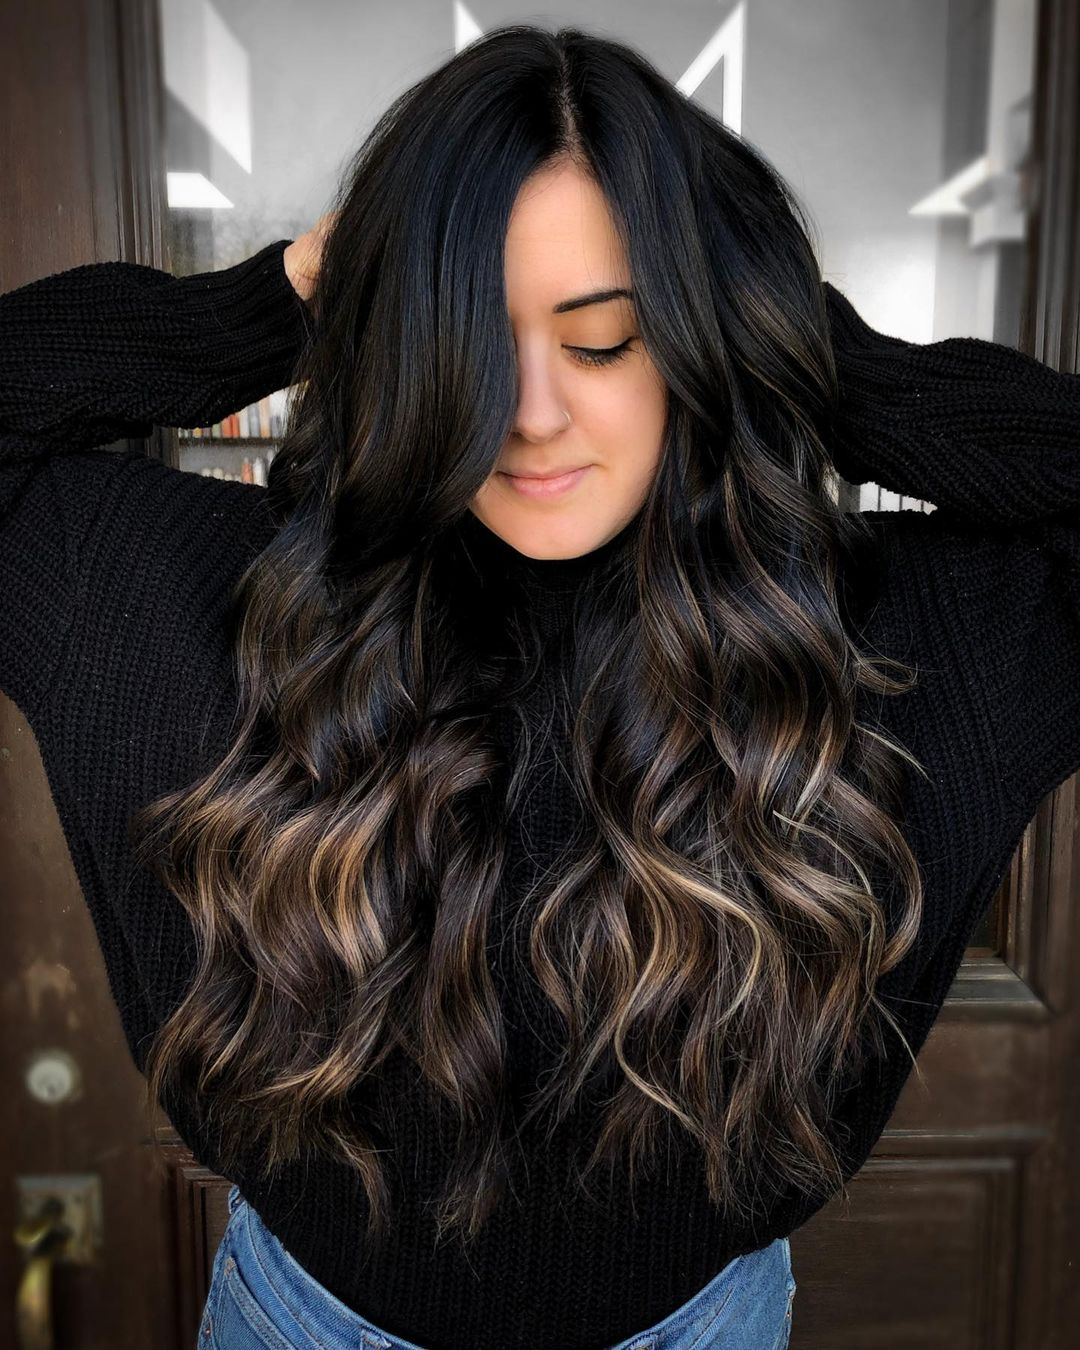 How to Make Your Black Hair Color Shiny and Glossy